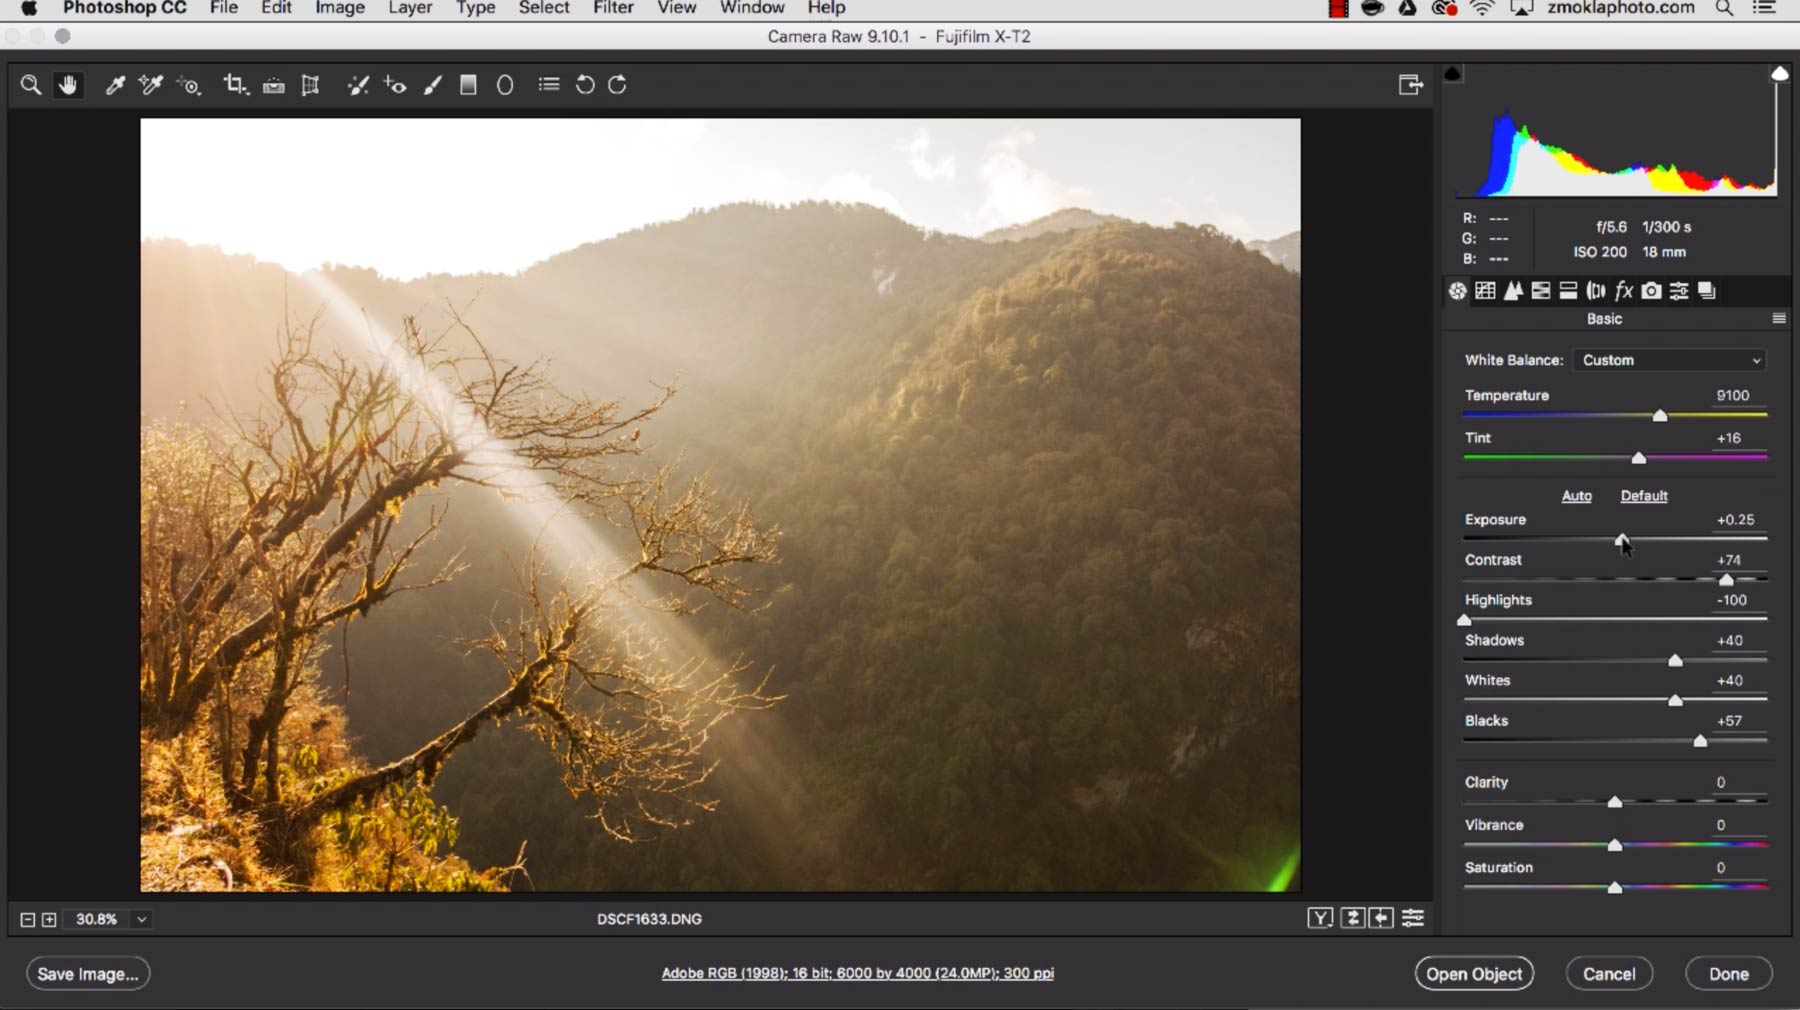 Developing RAW Files In Adobe Camera RAW